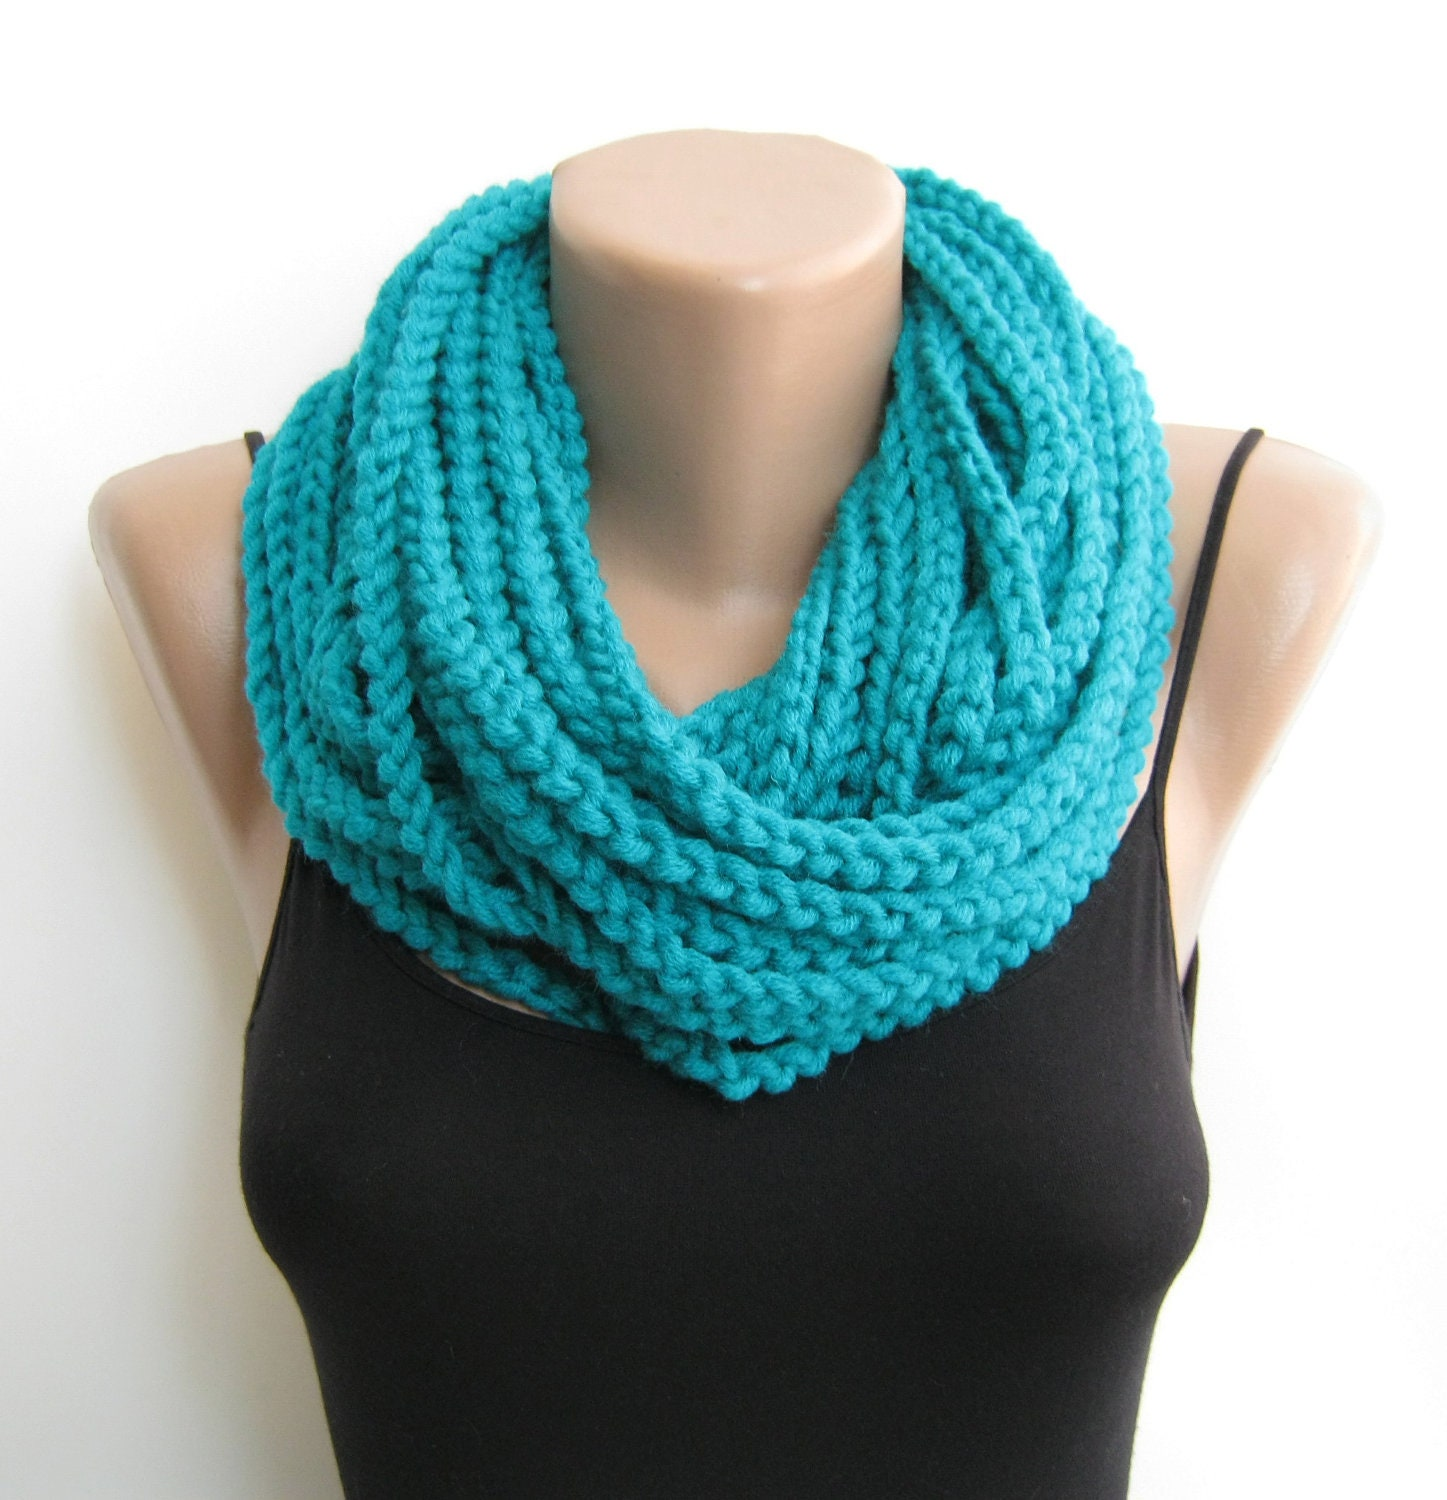 Teal crochet chain scarfcowlneck warmer infinity scarf Cowl Neck Scarves Crochet